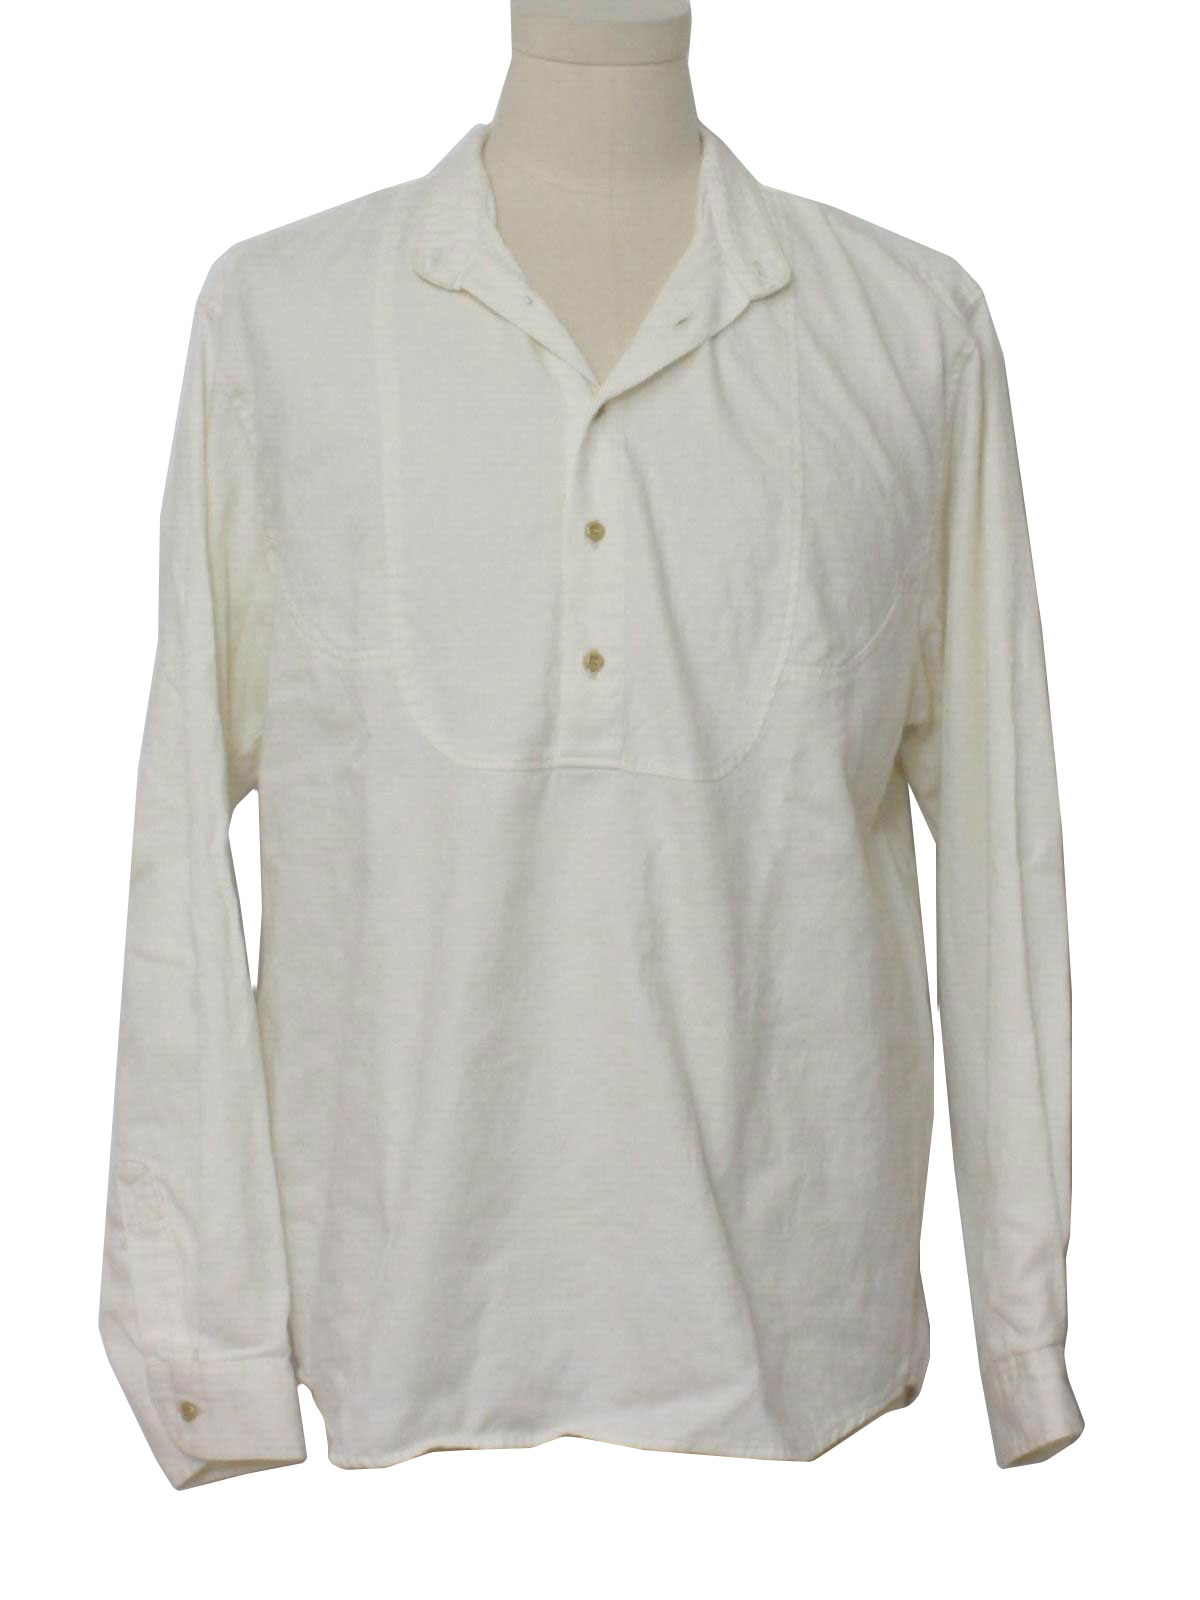 Western Shirt 90s Wah Frontier Mens 19th Century